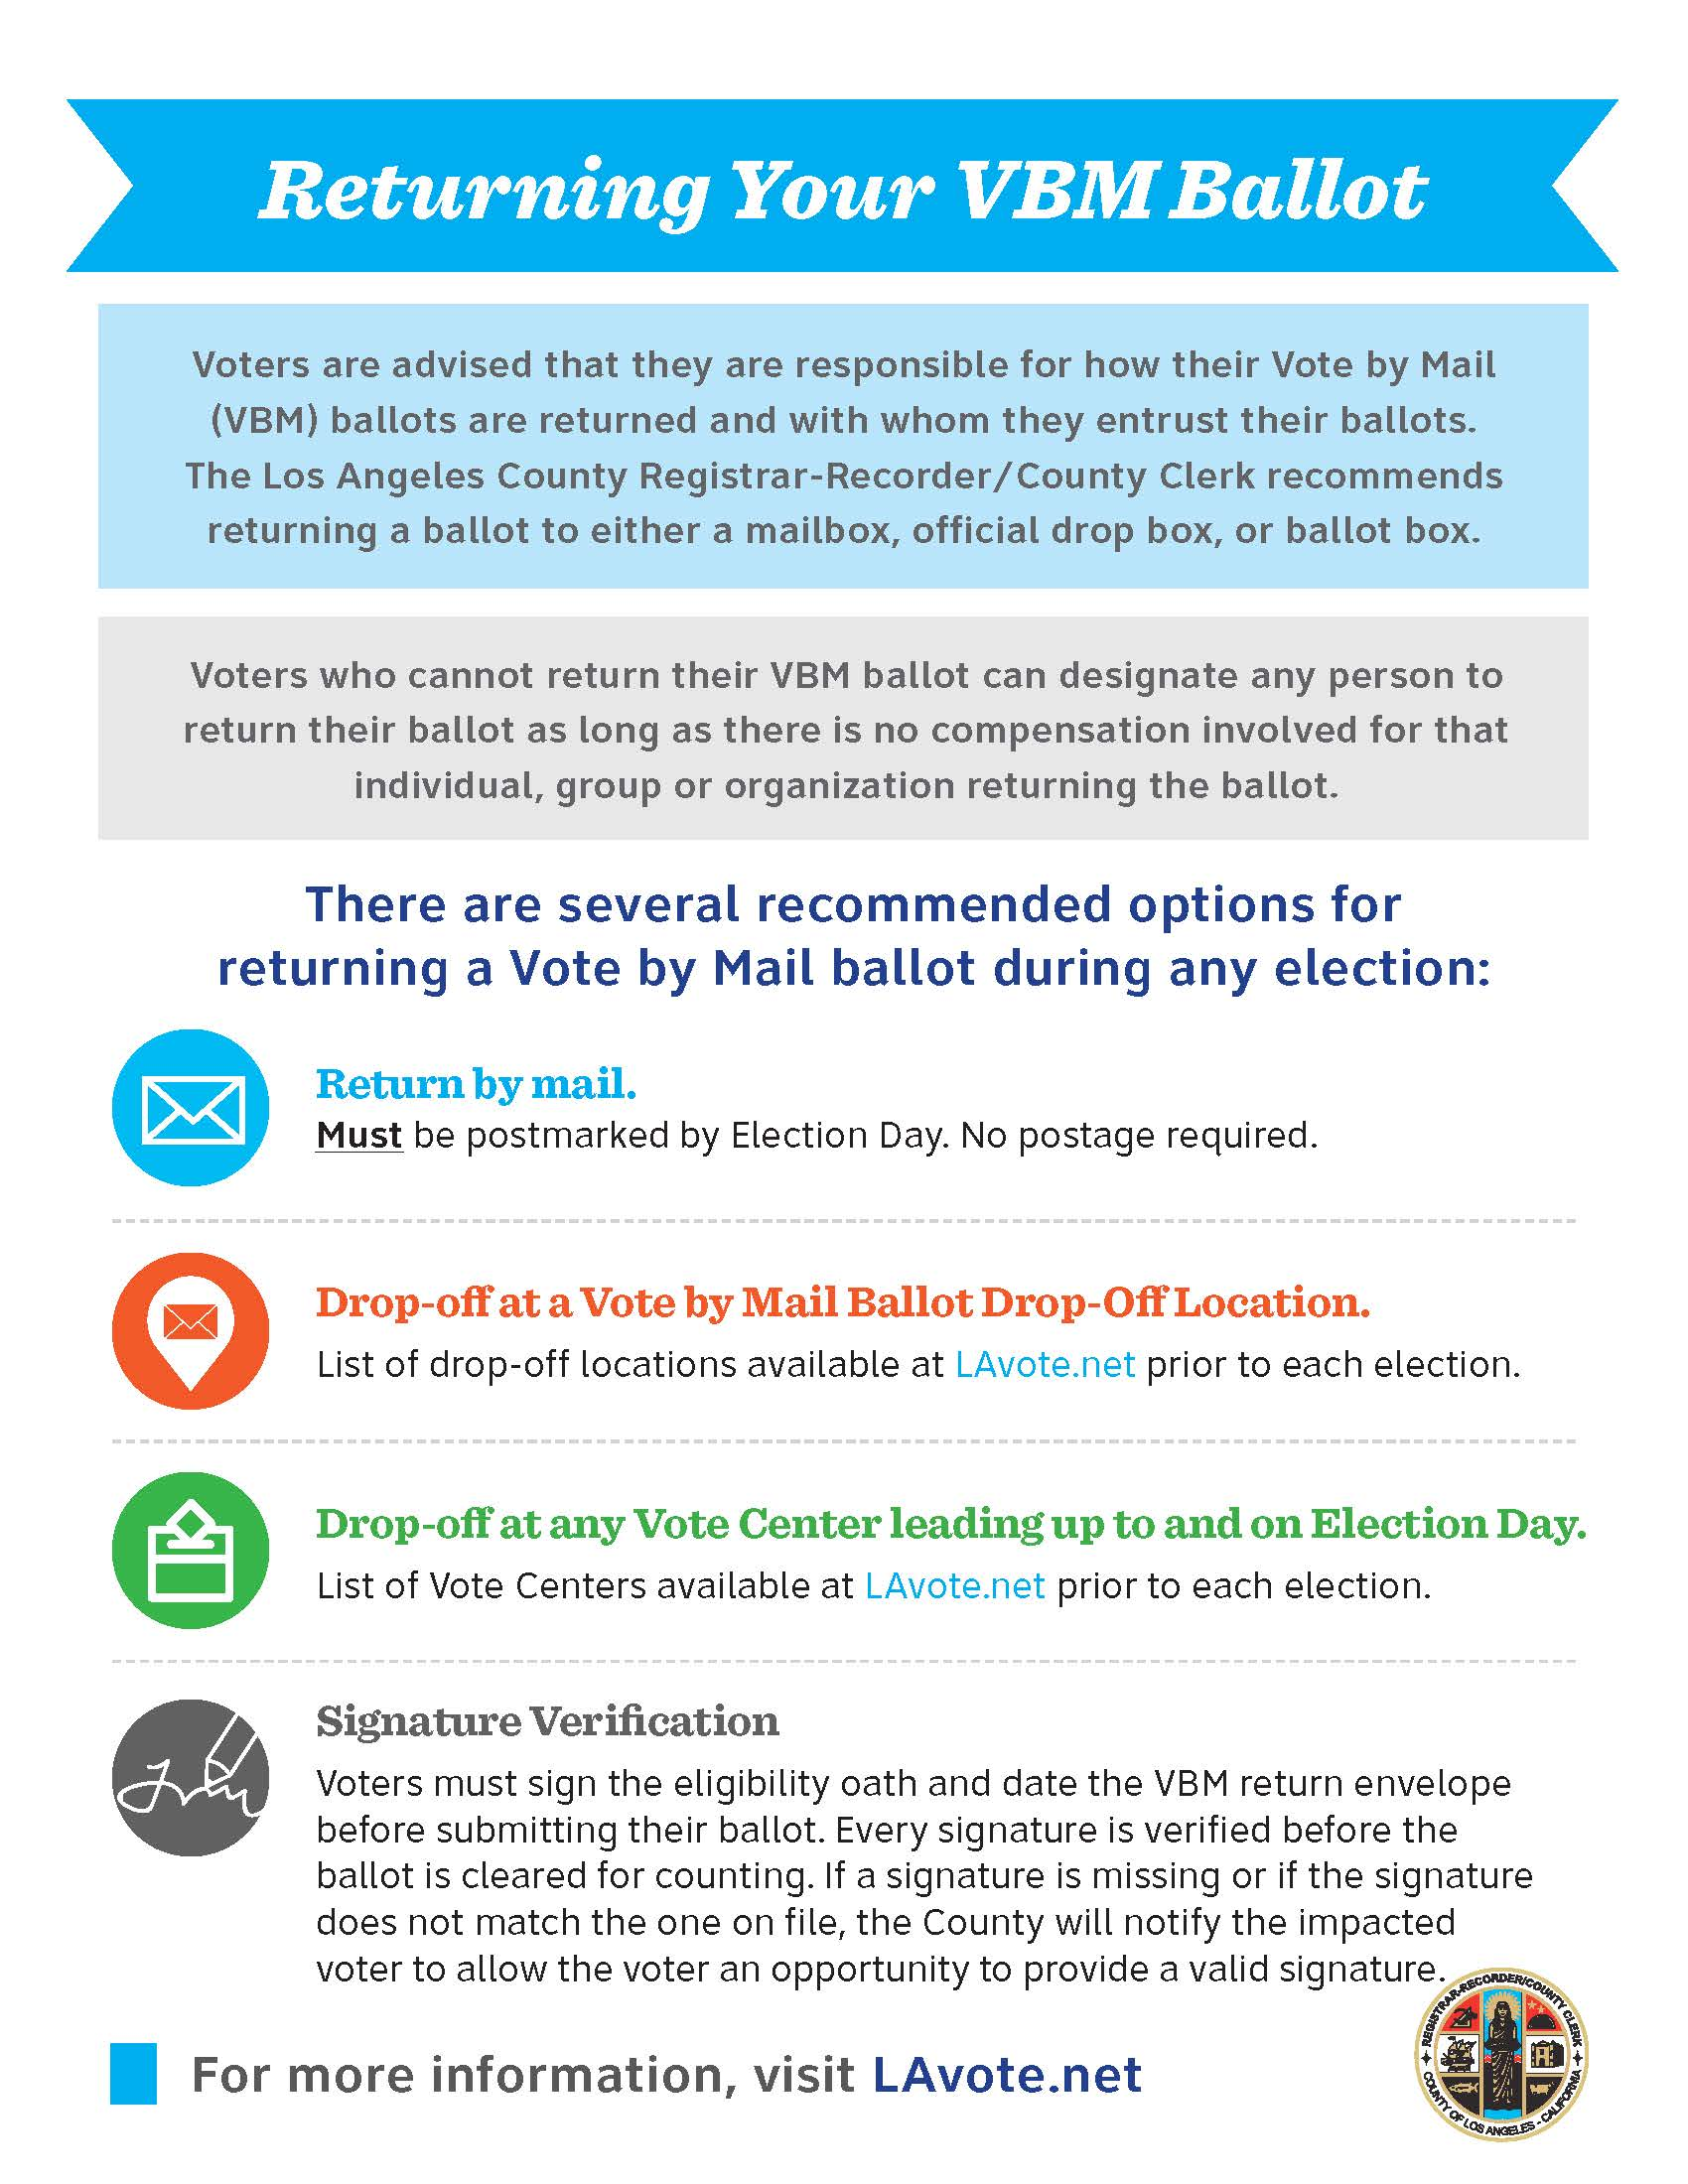 graphic showing information on Returning Your VBM Ballot